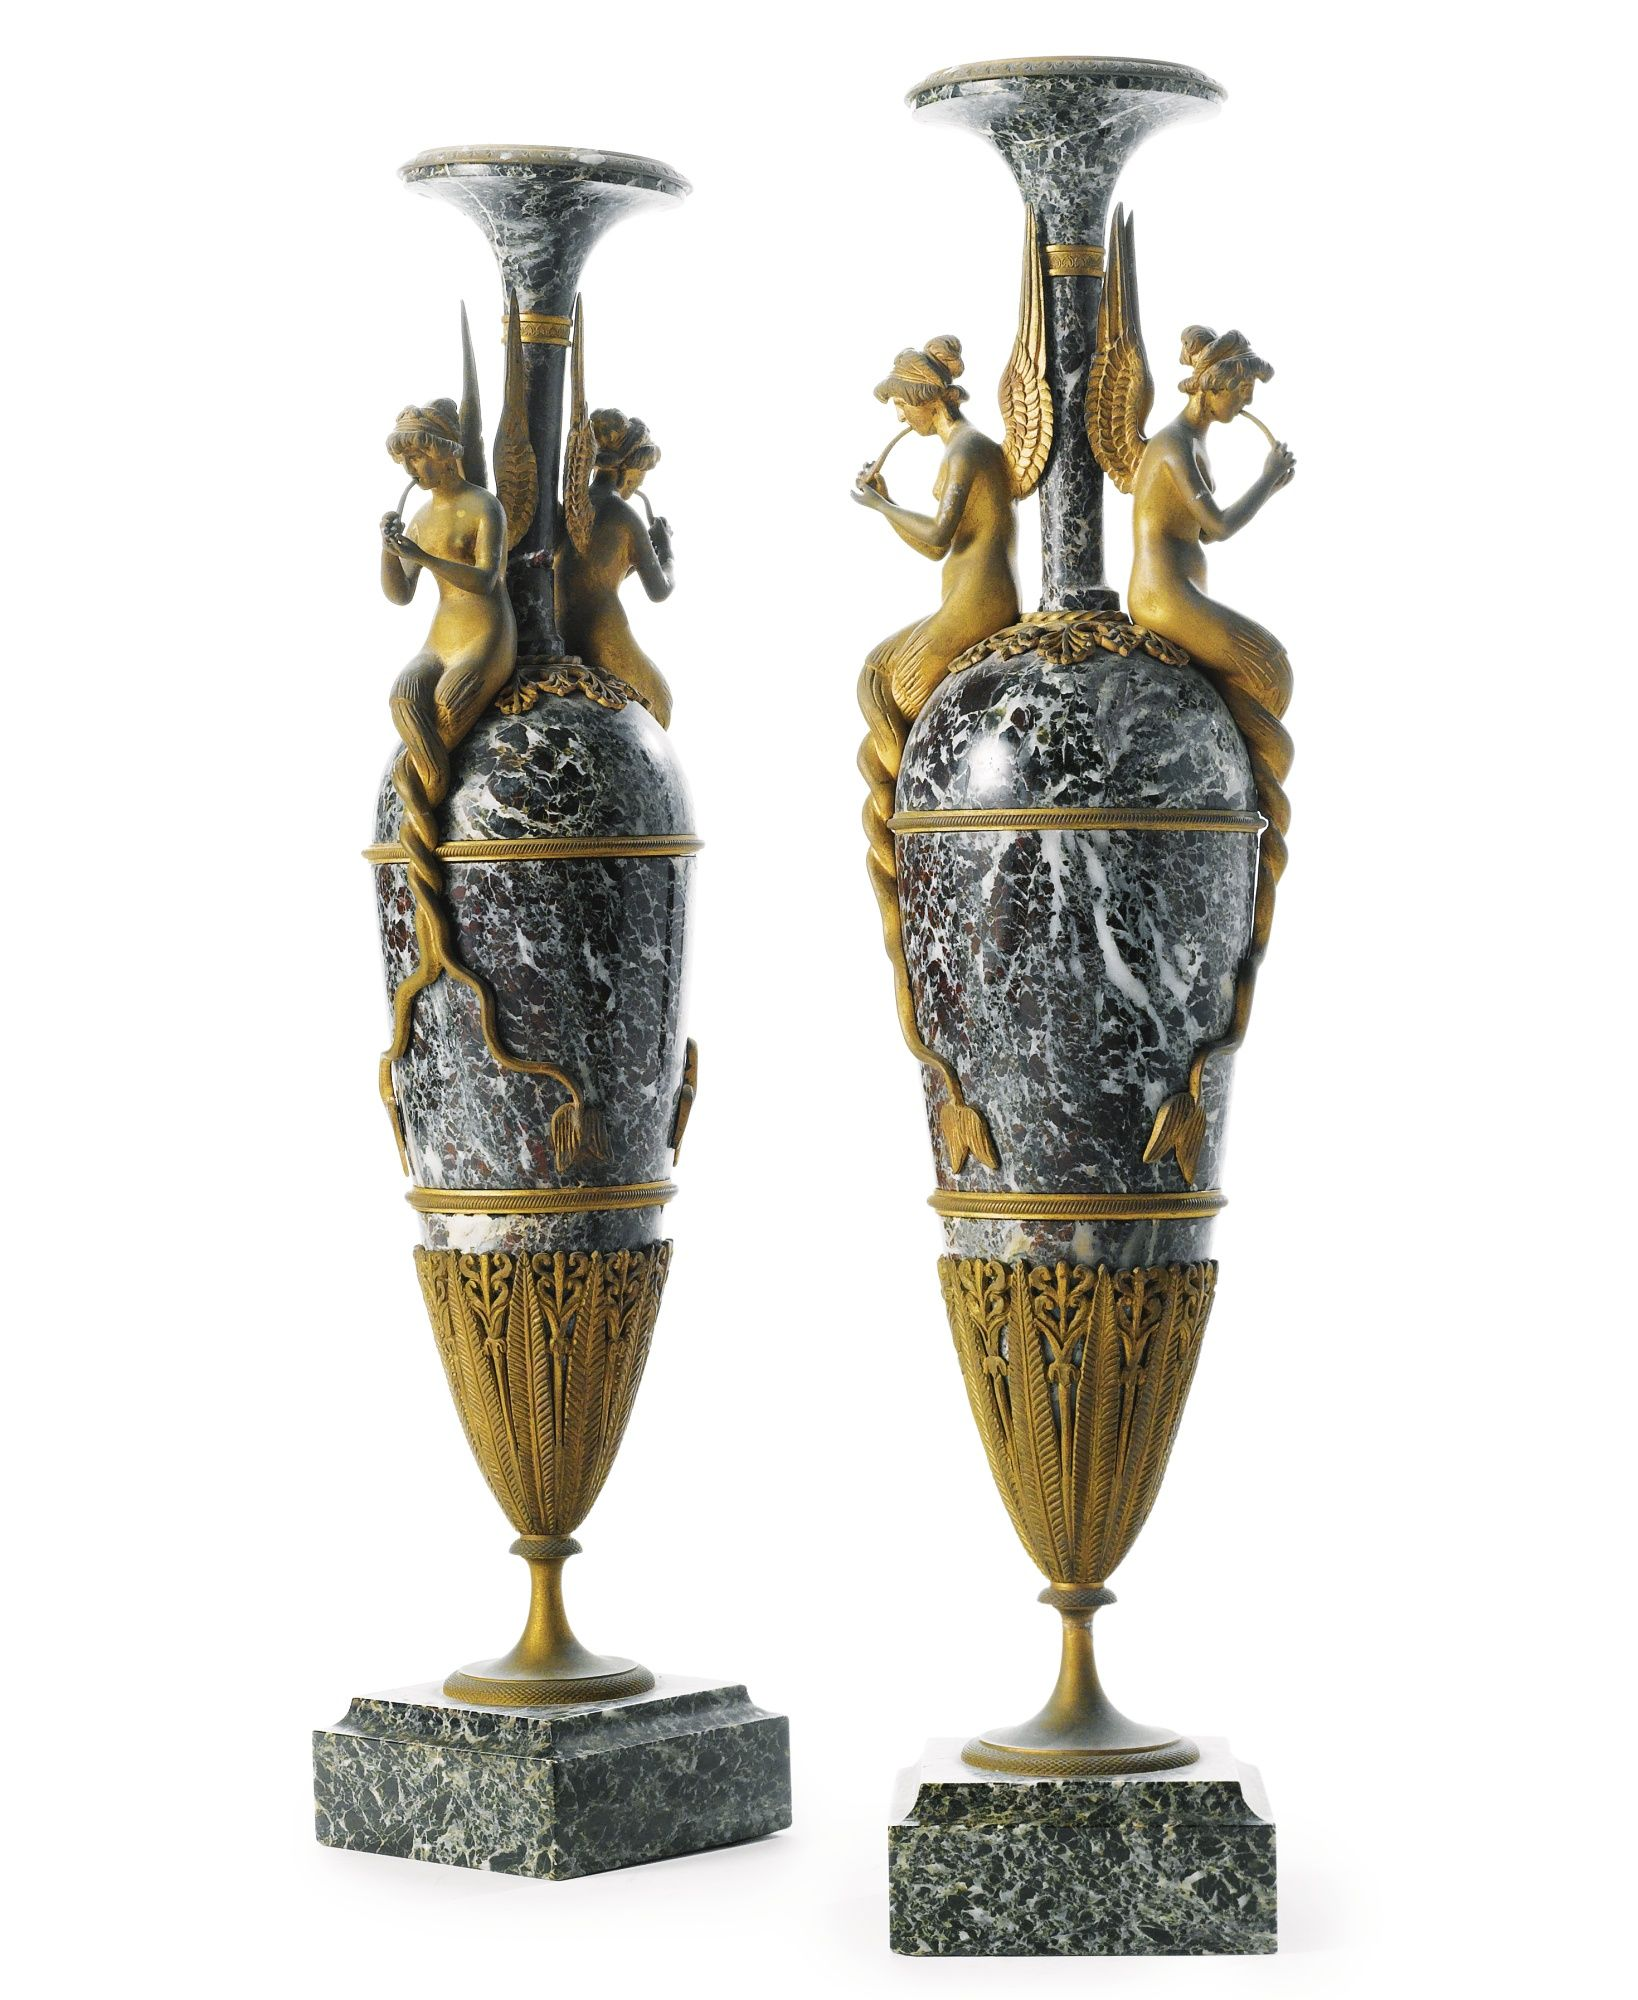 *A PAIR OF EMPIRE STYLE GILT BRONZE MOUNTED LEVANTO ROUGE MARBLE URNS AFTER THE MODEL BY CLAUDE GALLÉ France, circa 1890s